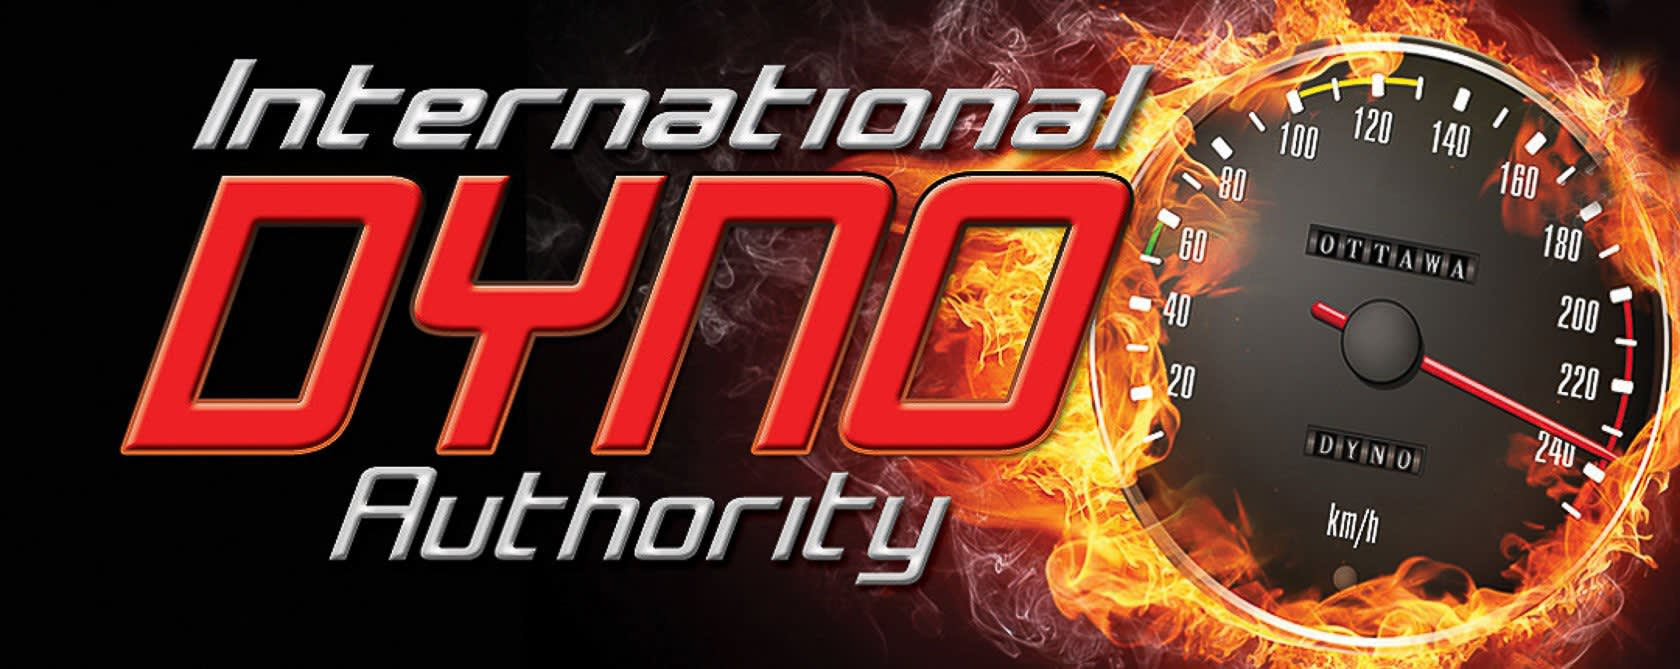 International dyno authority logo. speedometer surrounded by flames.